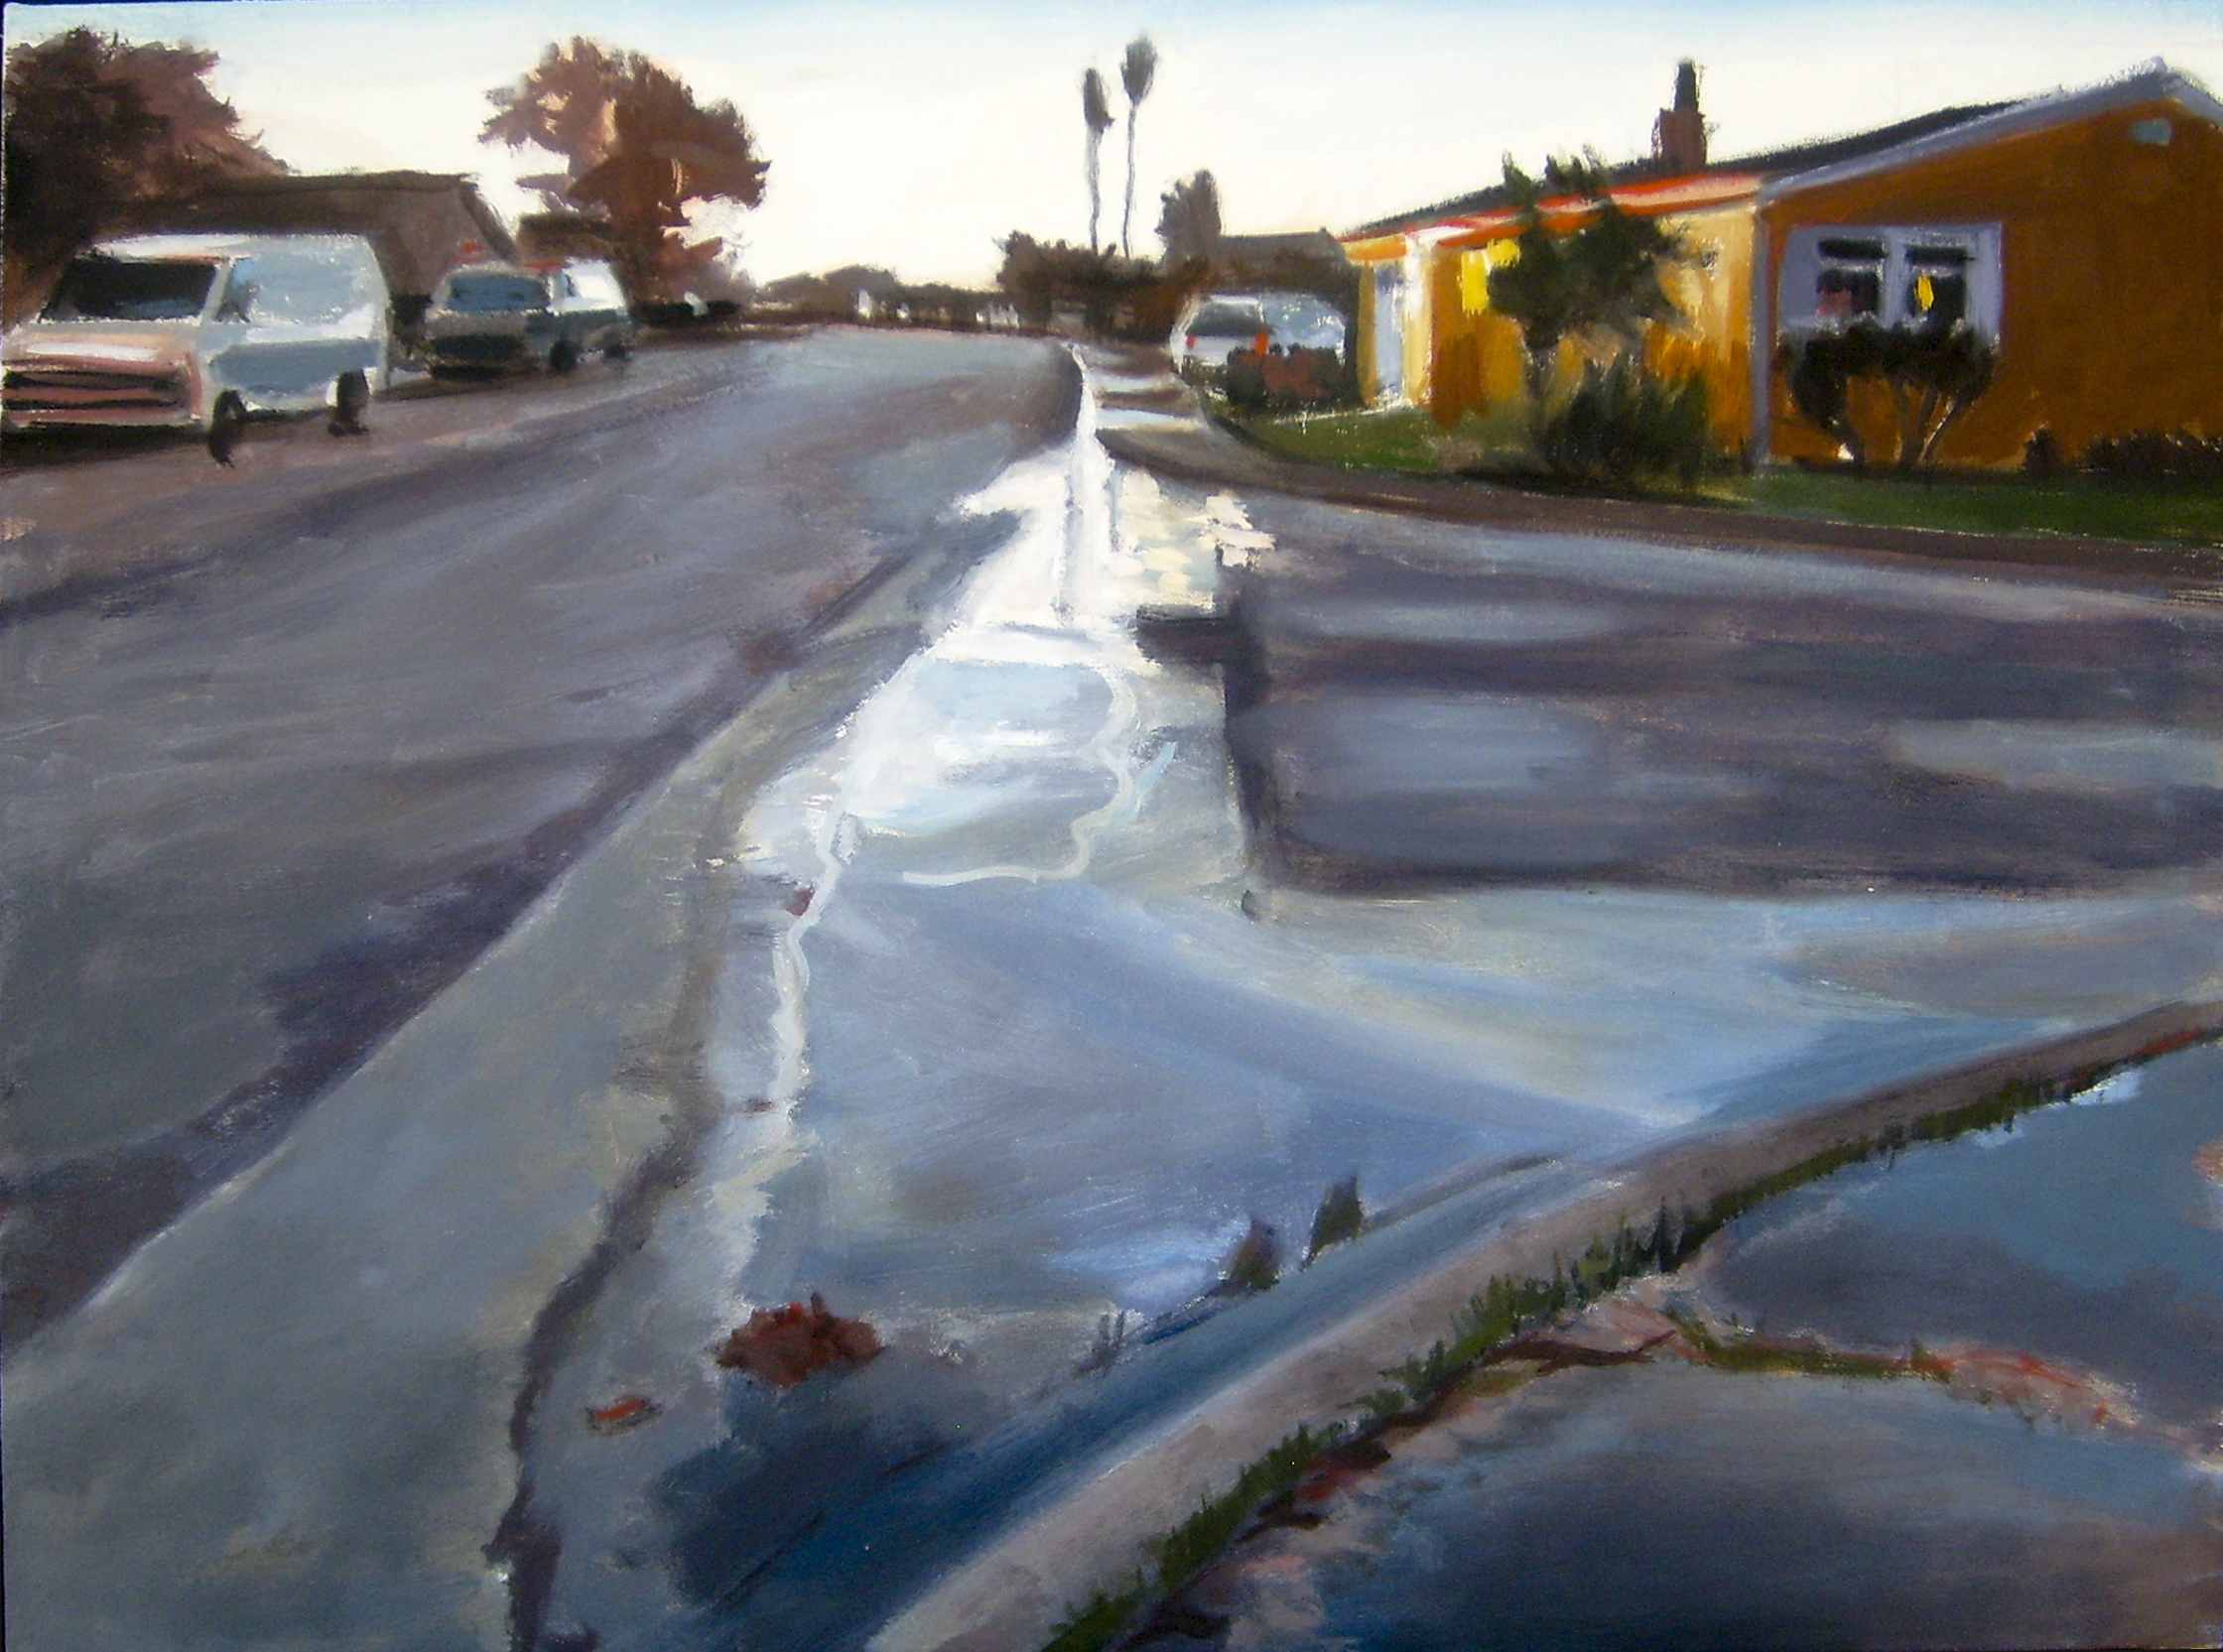 Street Puddle, Pacifica, 2011 David Dunn, oil on canvas, 20 x 28 inches.